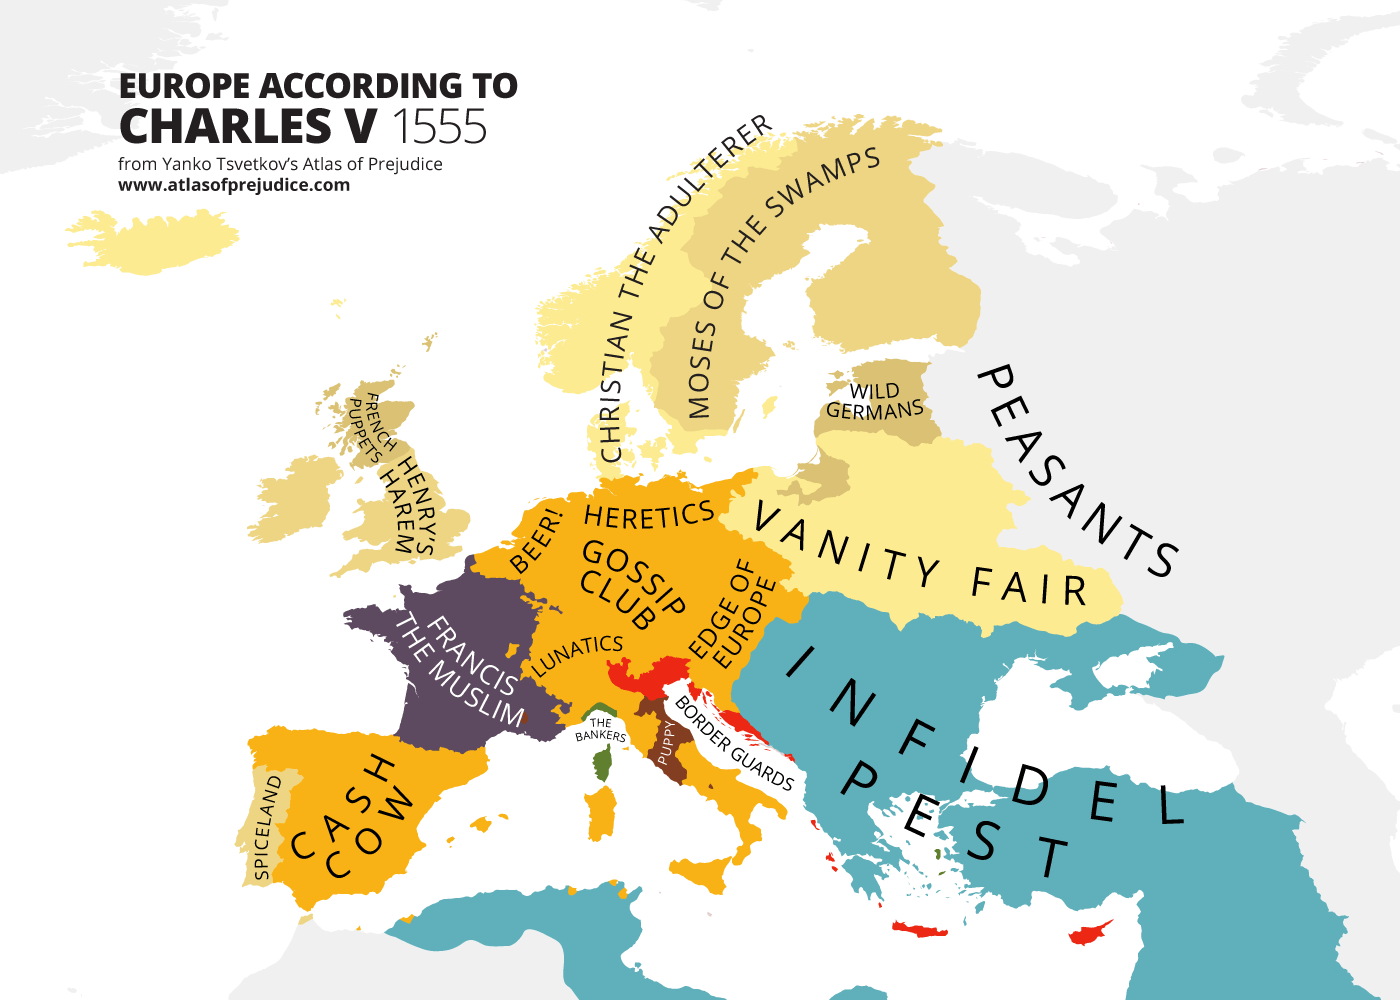 Map Of Europe In The 1500s.The European Age Of Incest Atlas Of Prejudice